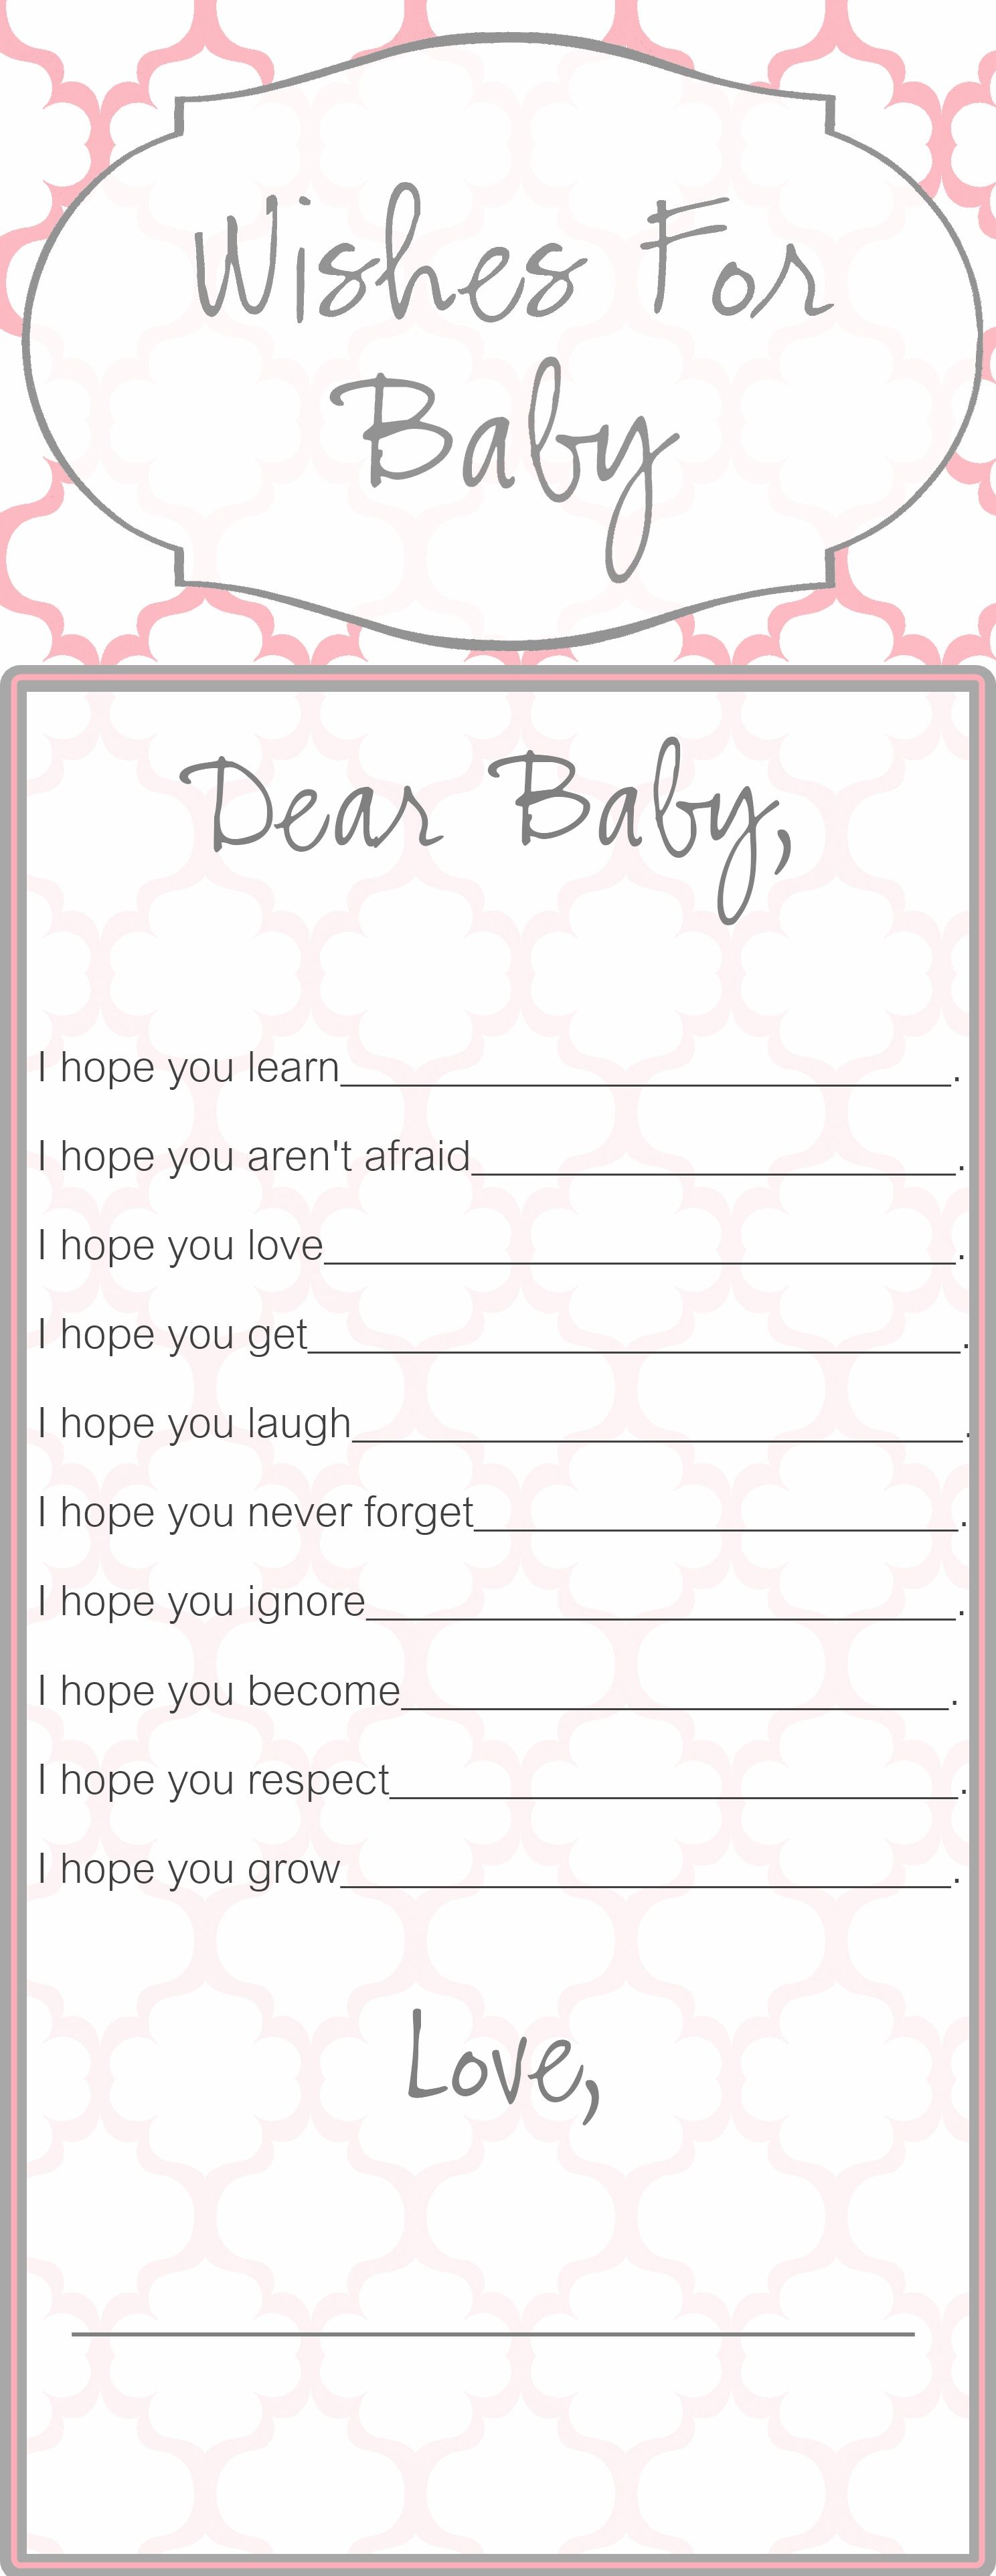 Wishes for Baby template that I created for a baby shower that my